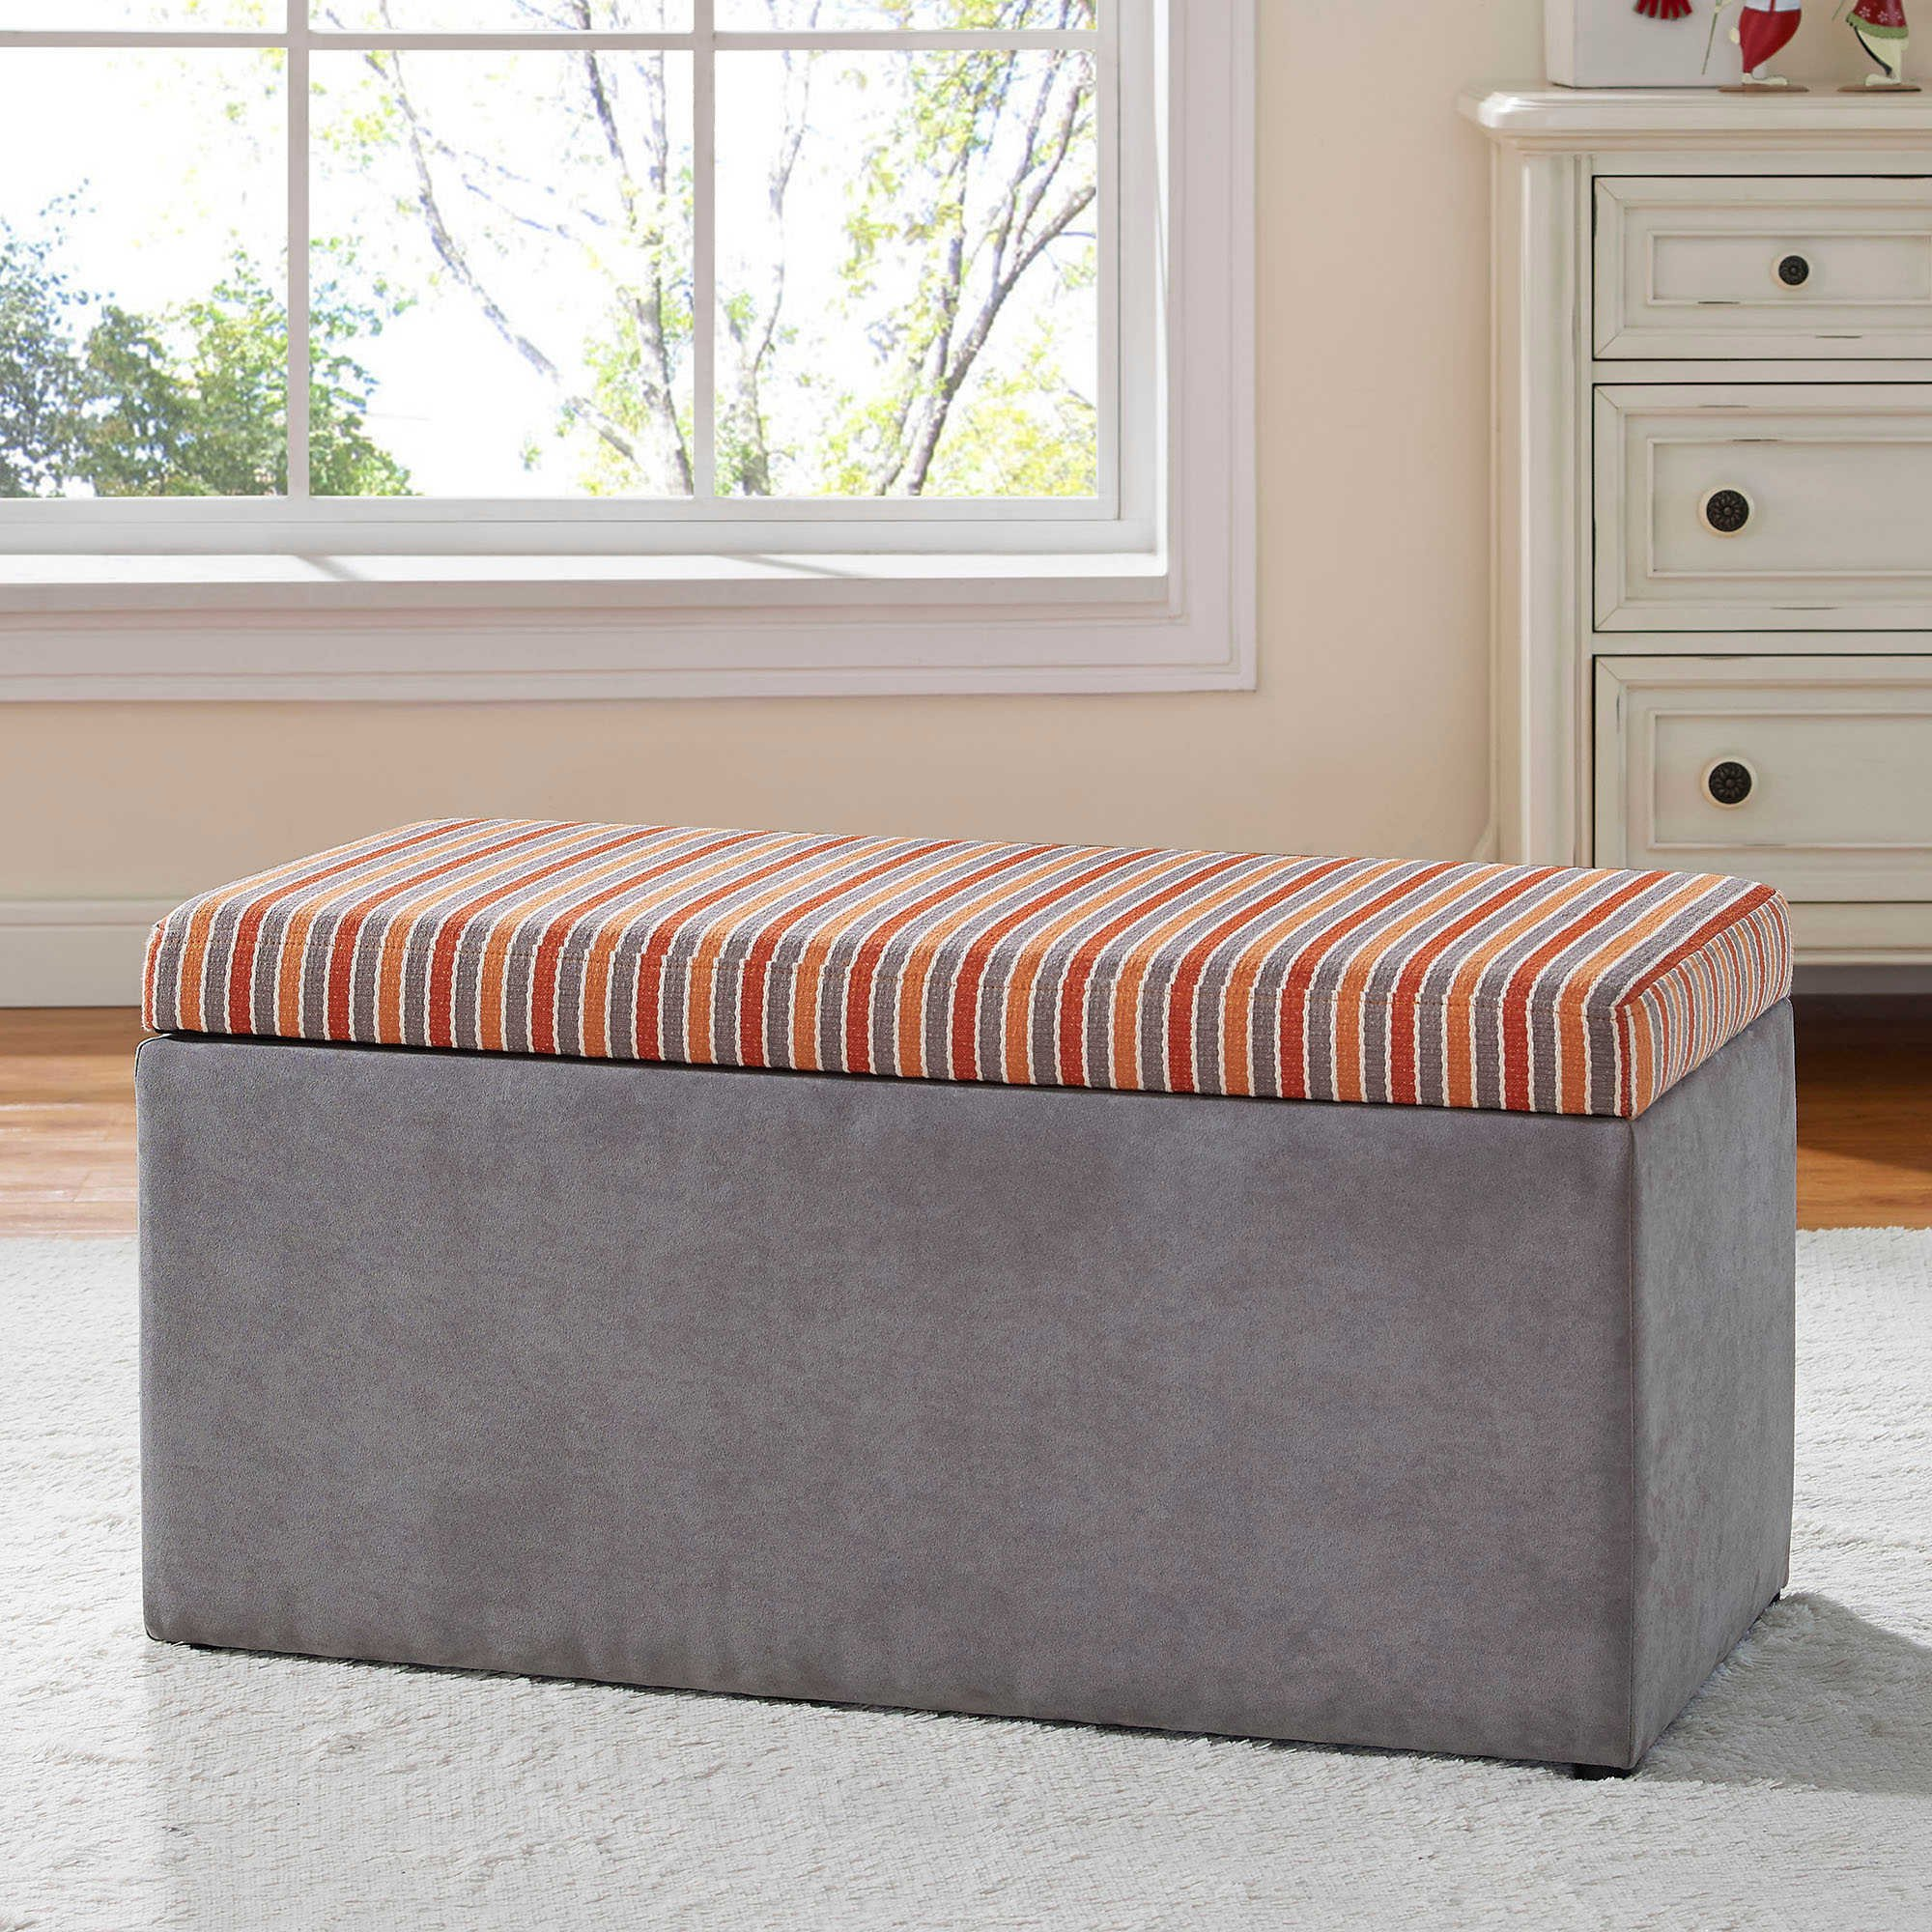 Tree House Lane Kids Upholstered Toy Chest in Orange/Grey by Generic